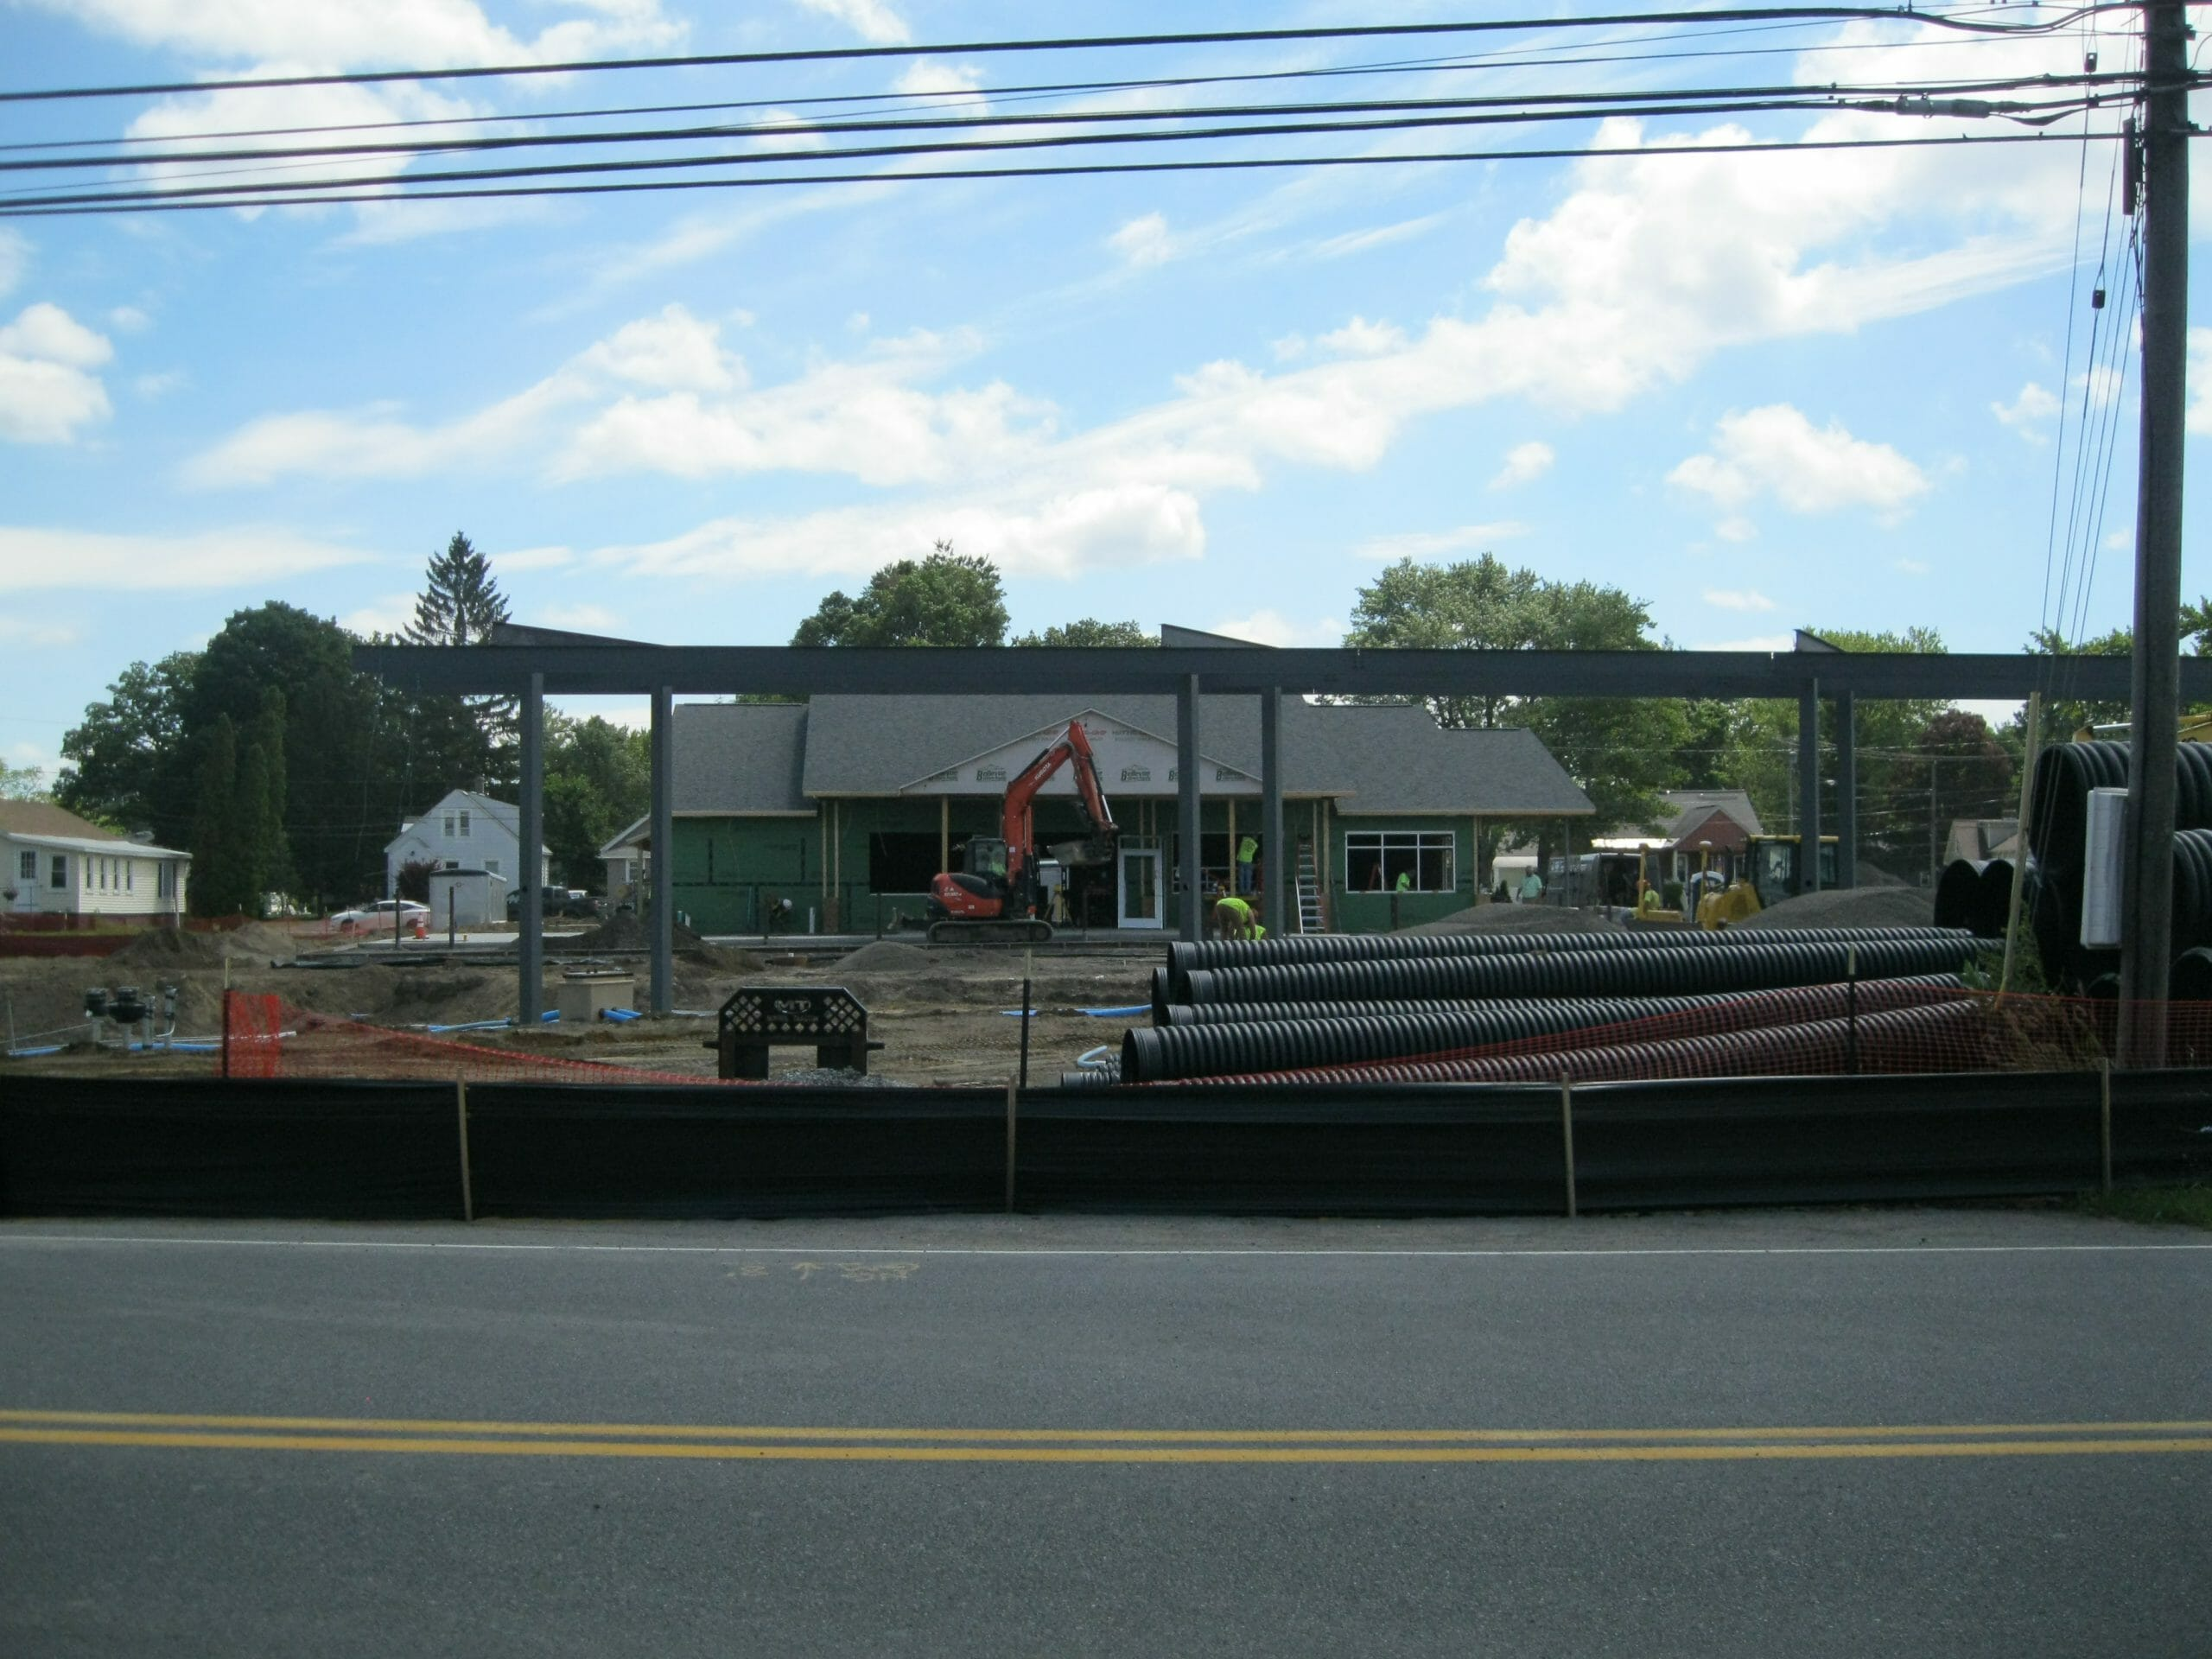 Stewart's shop and gas canopy under construction